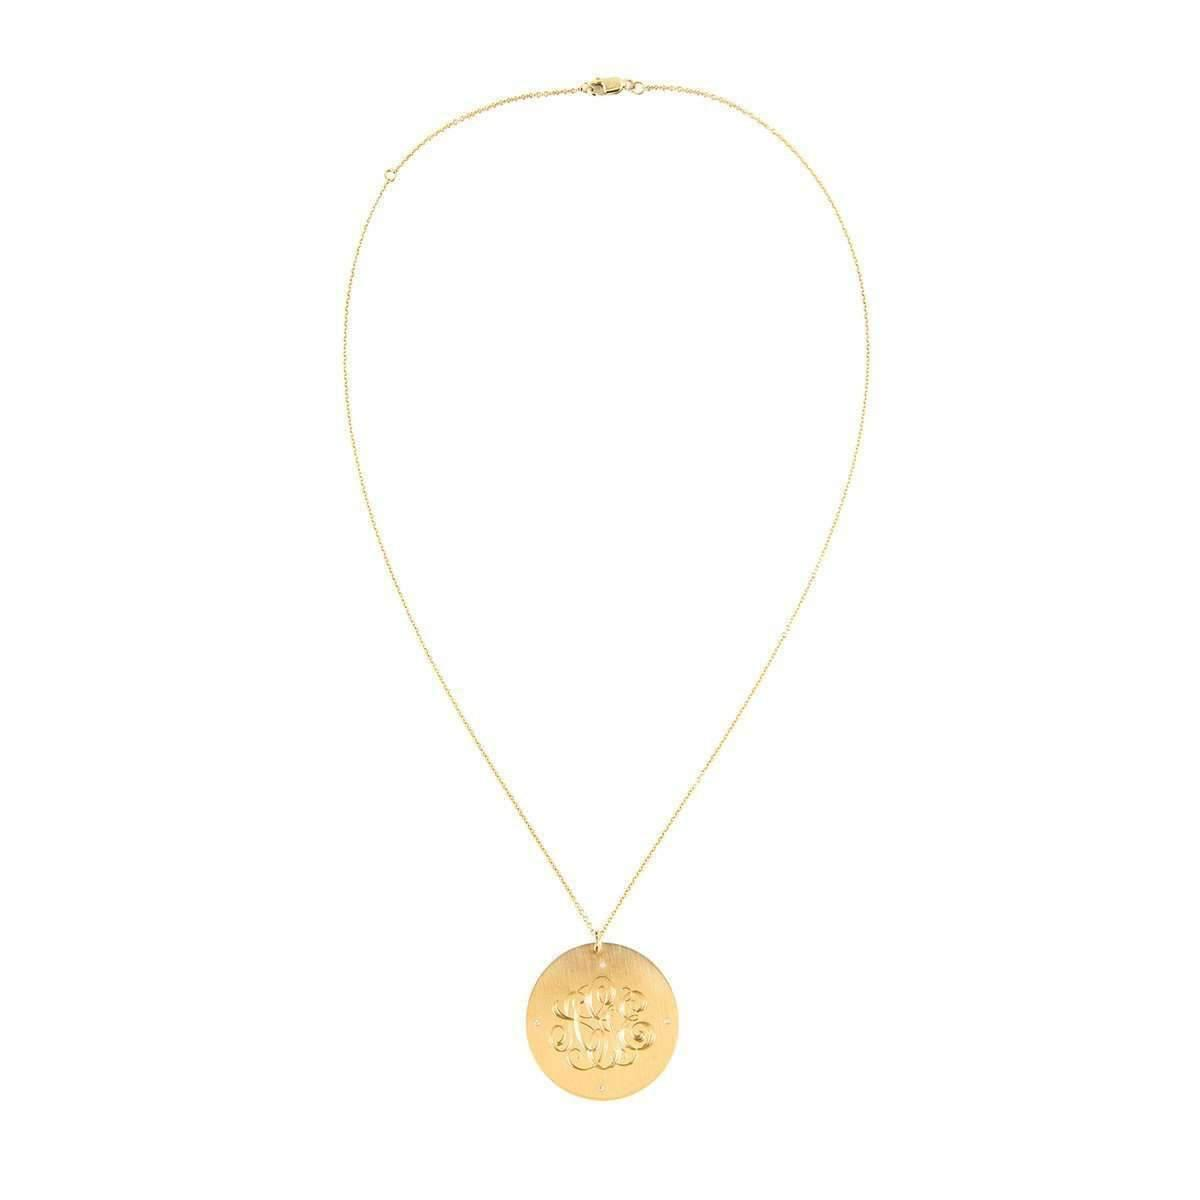 Emily & Ashley Classic Charm Disc with Diamonds Necklace sa8BZM7nJ1